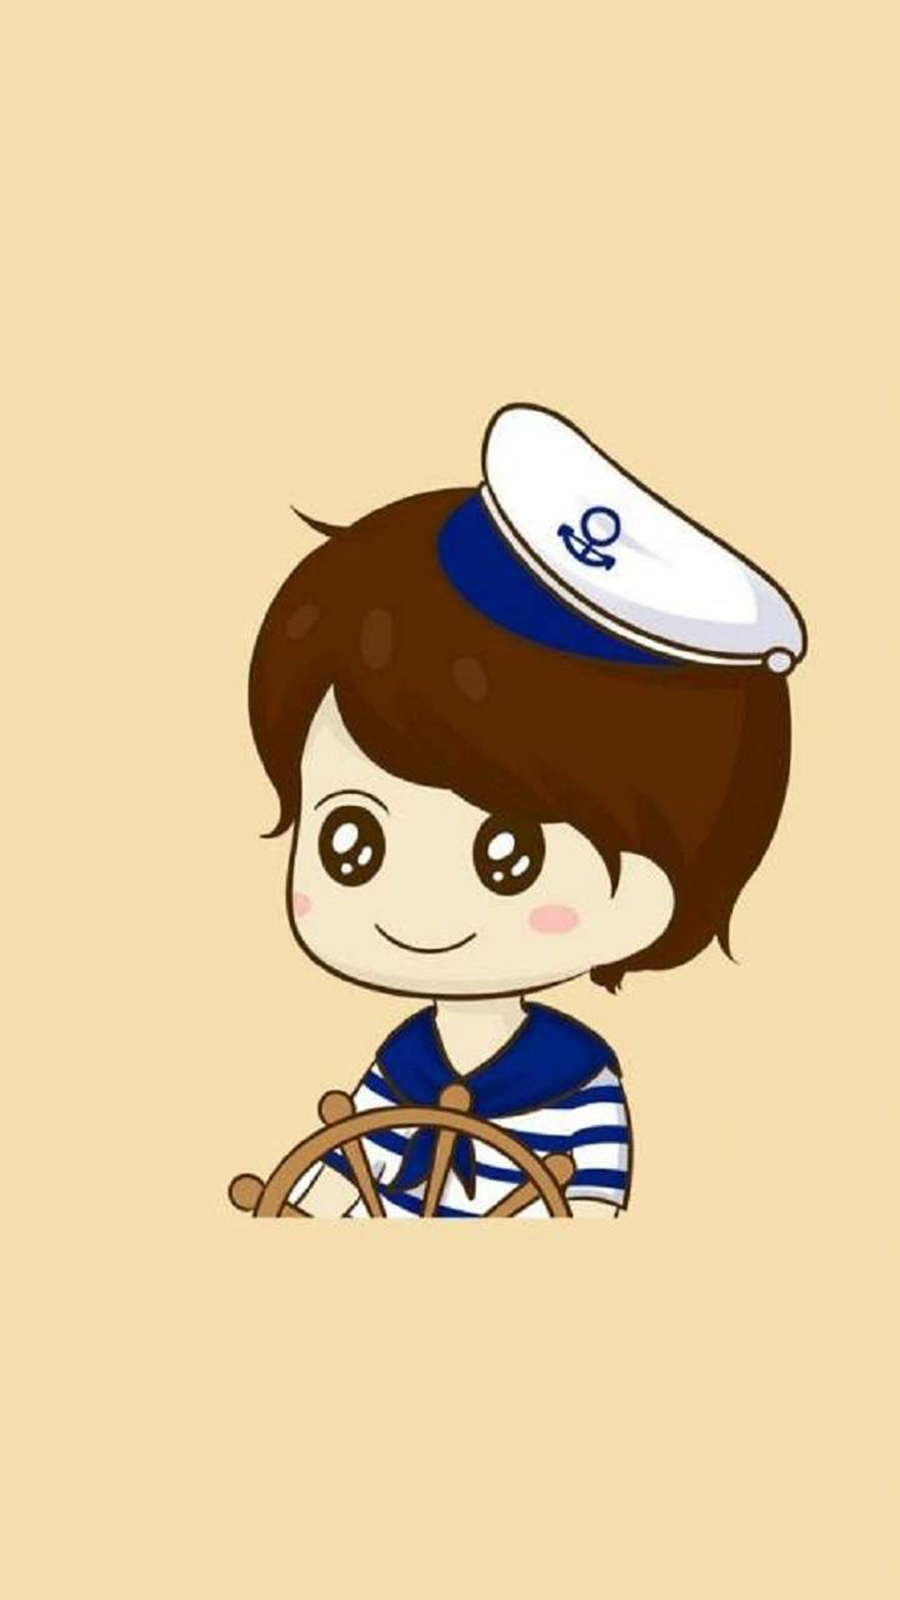 Sailor Boy Wallpapers Now Download